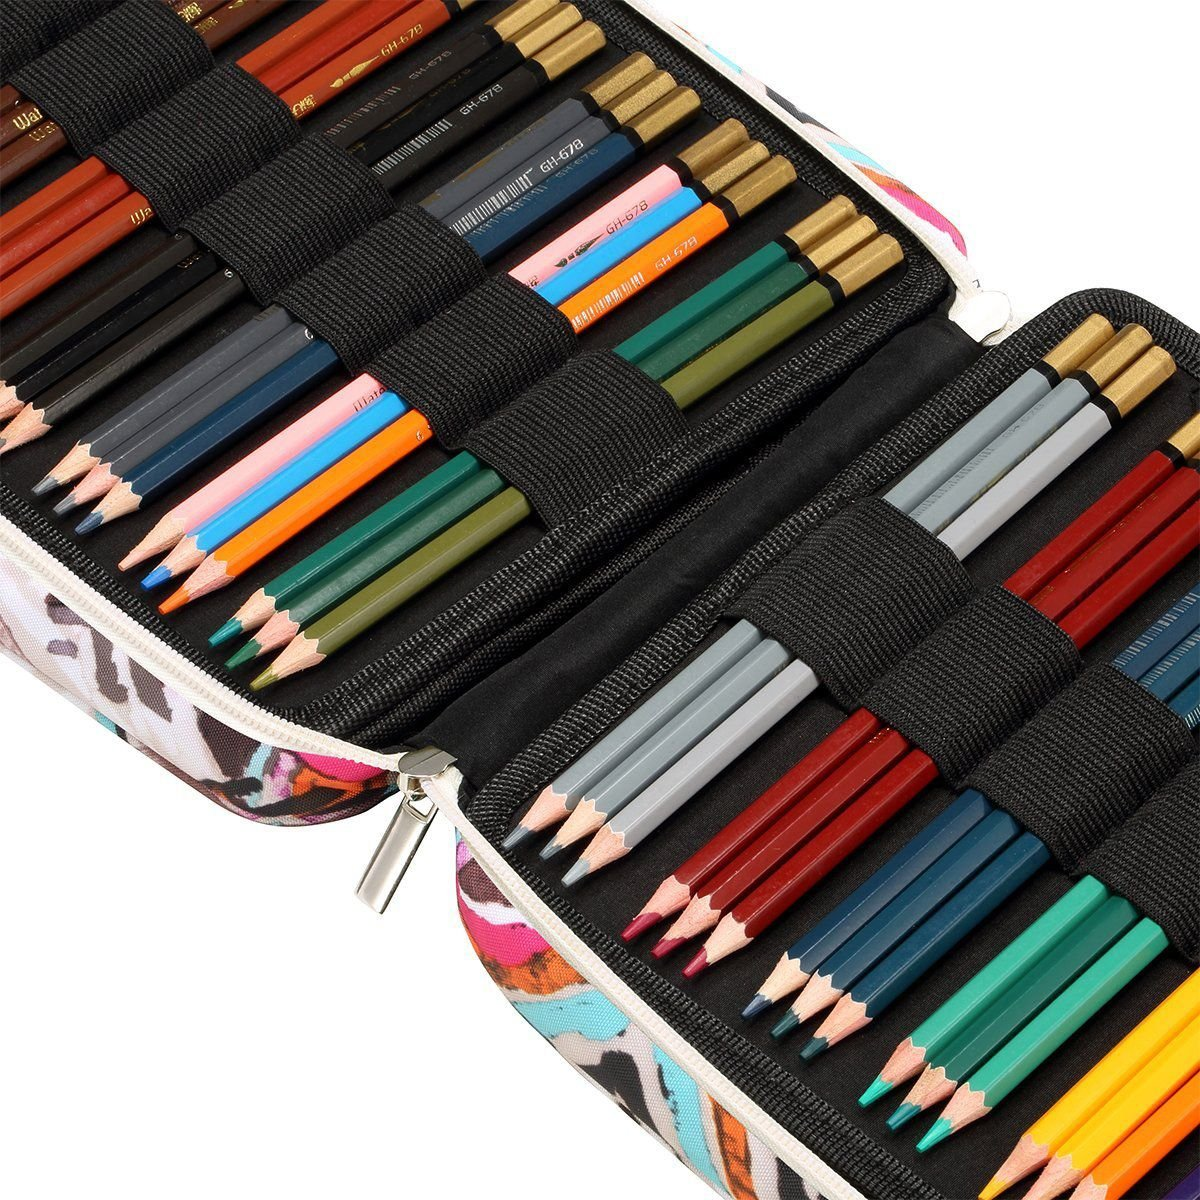 Nrpfell 150 Slots Colored Pencils Universal Pencil Bag Pen Case School Stationery PencilCase Drawing Painting Storage Pouch Pencil Box(Eyeglass Painted) by Nrpfell (Image #7)